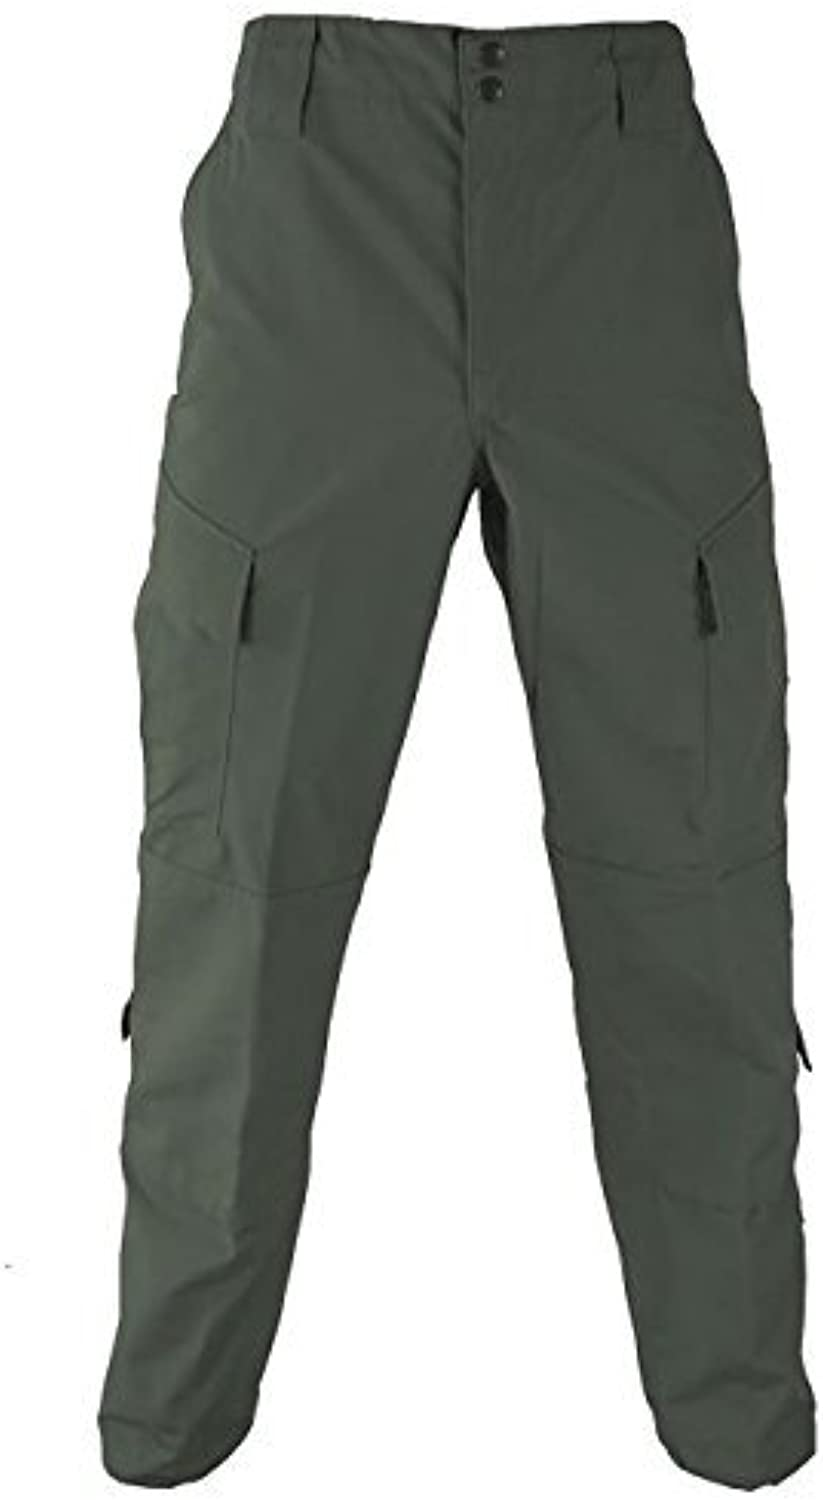 Propper TAC.U Trouser, 42 Short, Olive by Propper